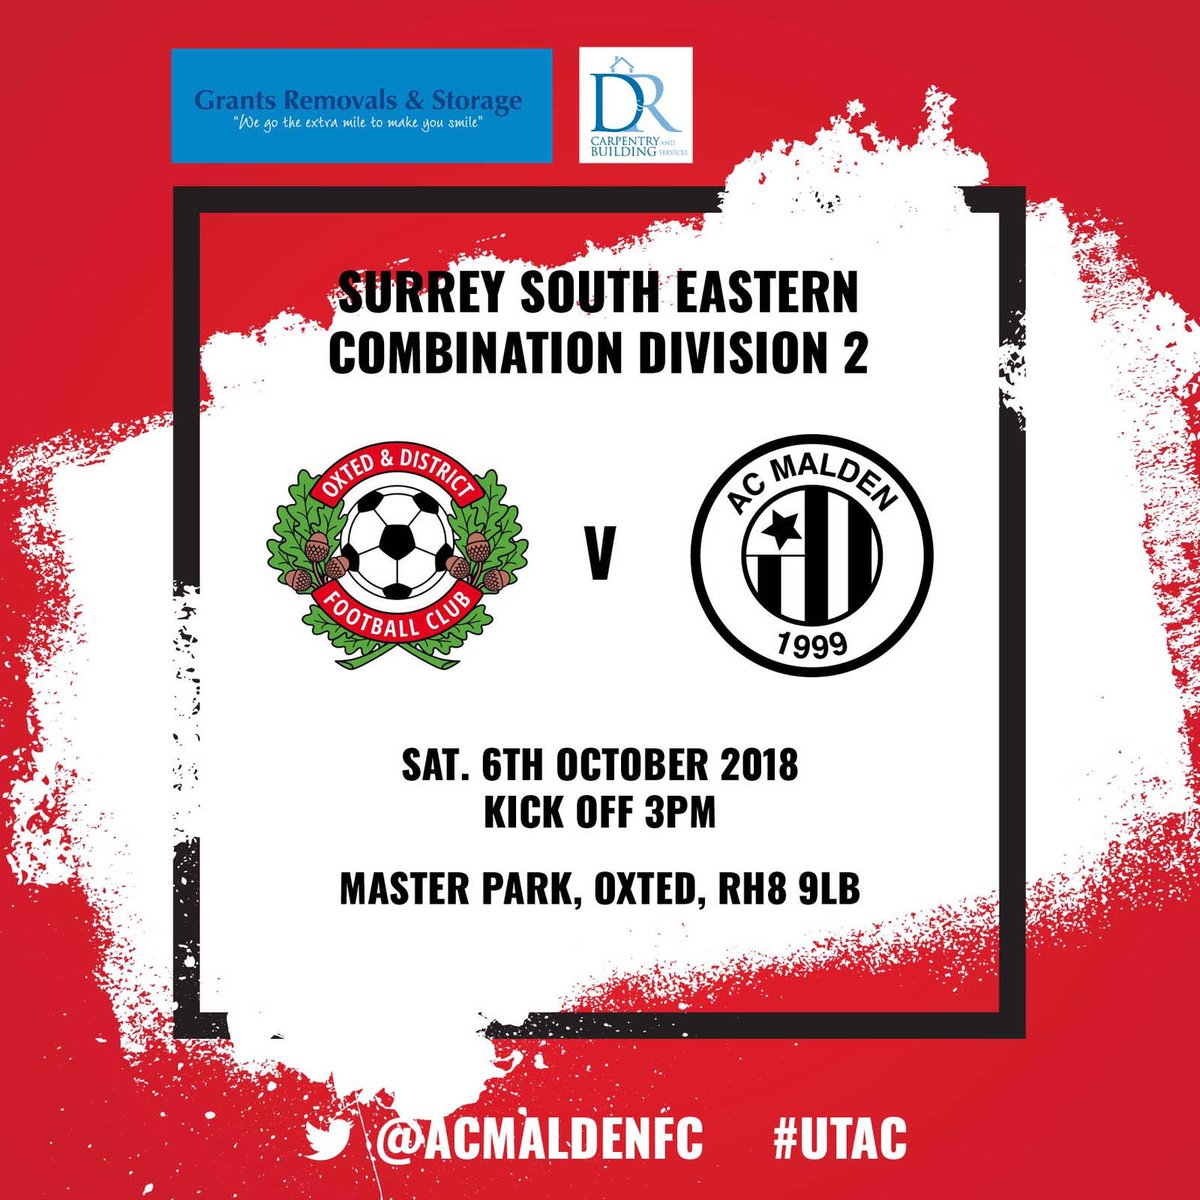 We are back on the road tomorrow against @oxtedfc 3pm KO in the SSEC Division 2 ⚫️🔴⚫️🔴 #UTAC